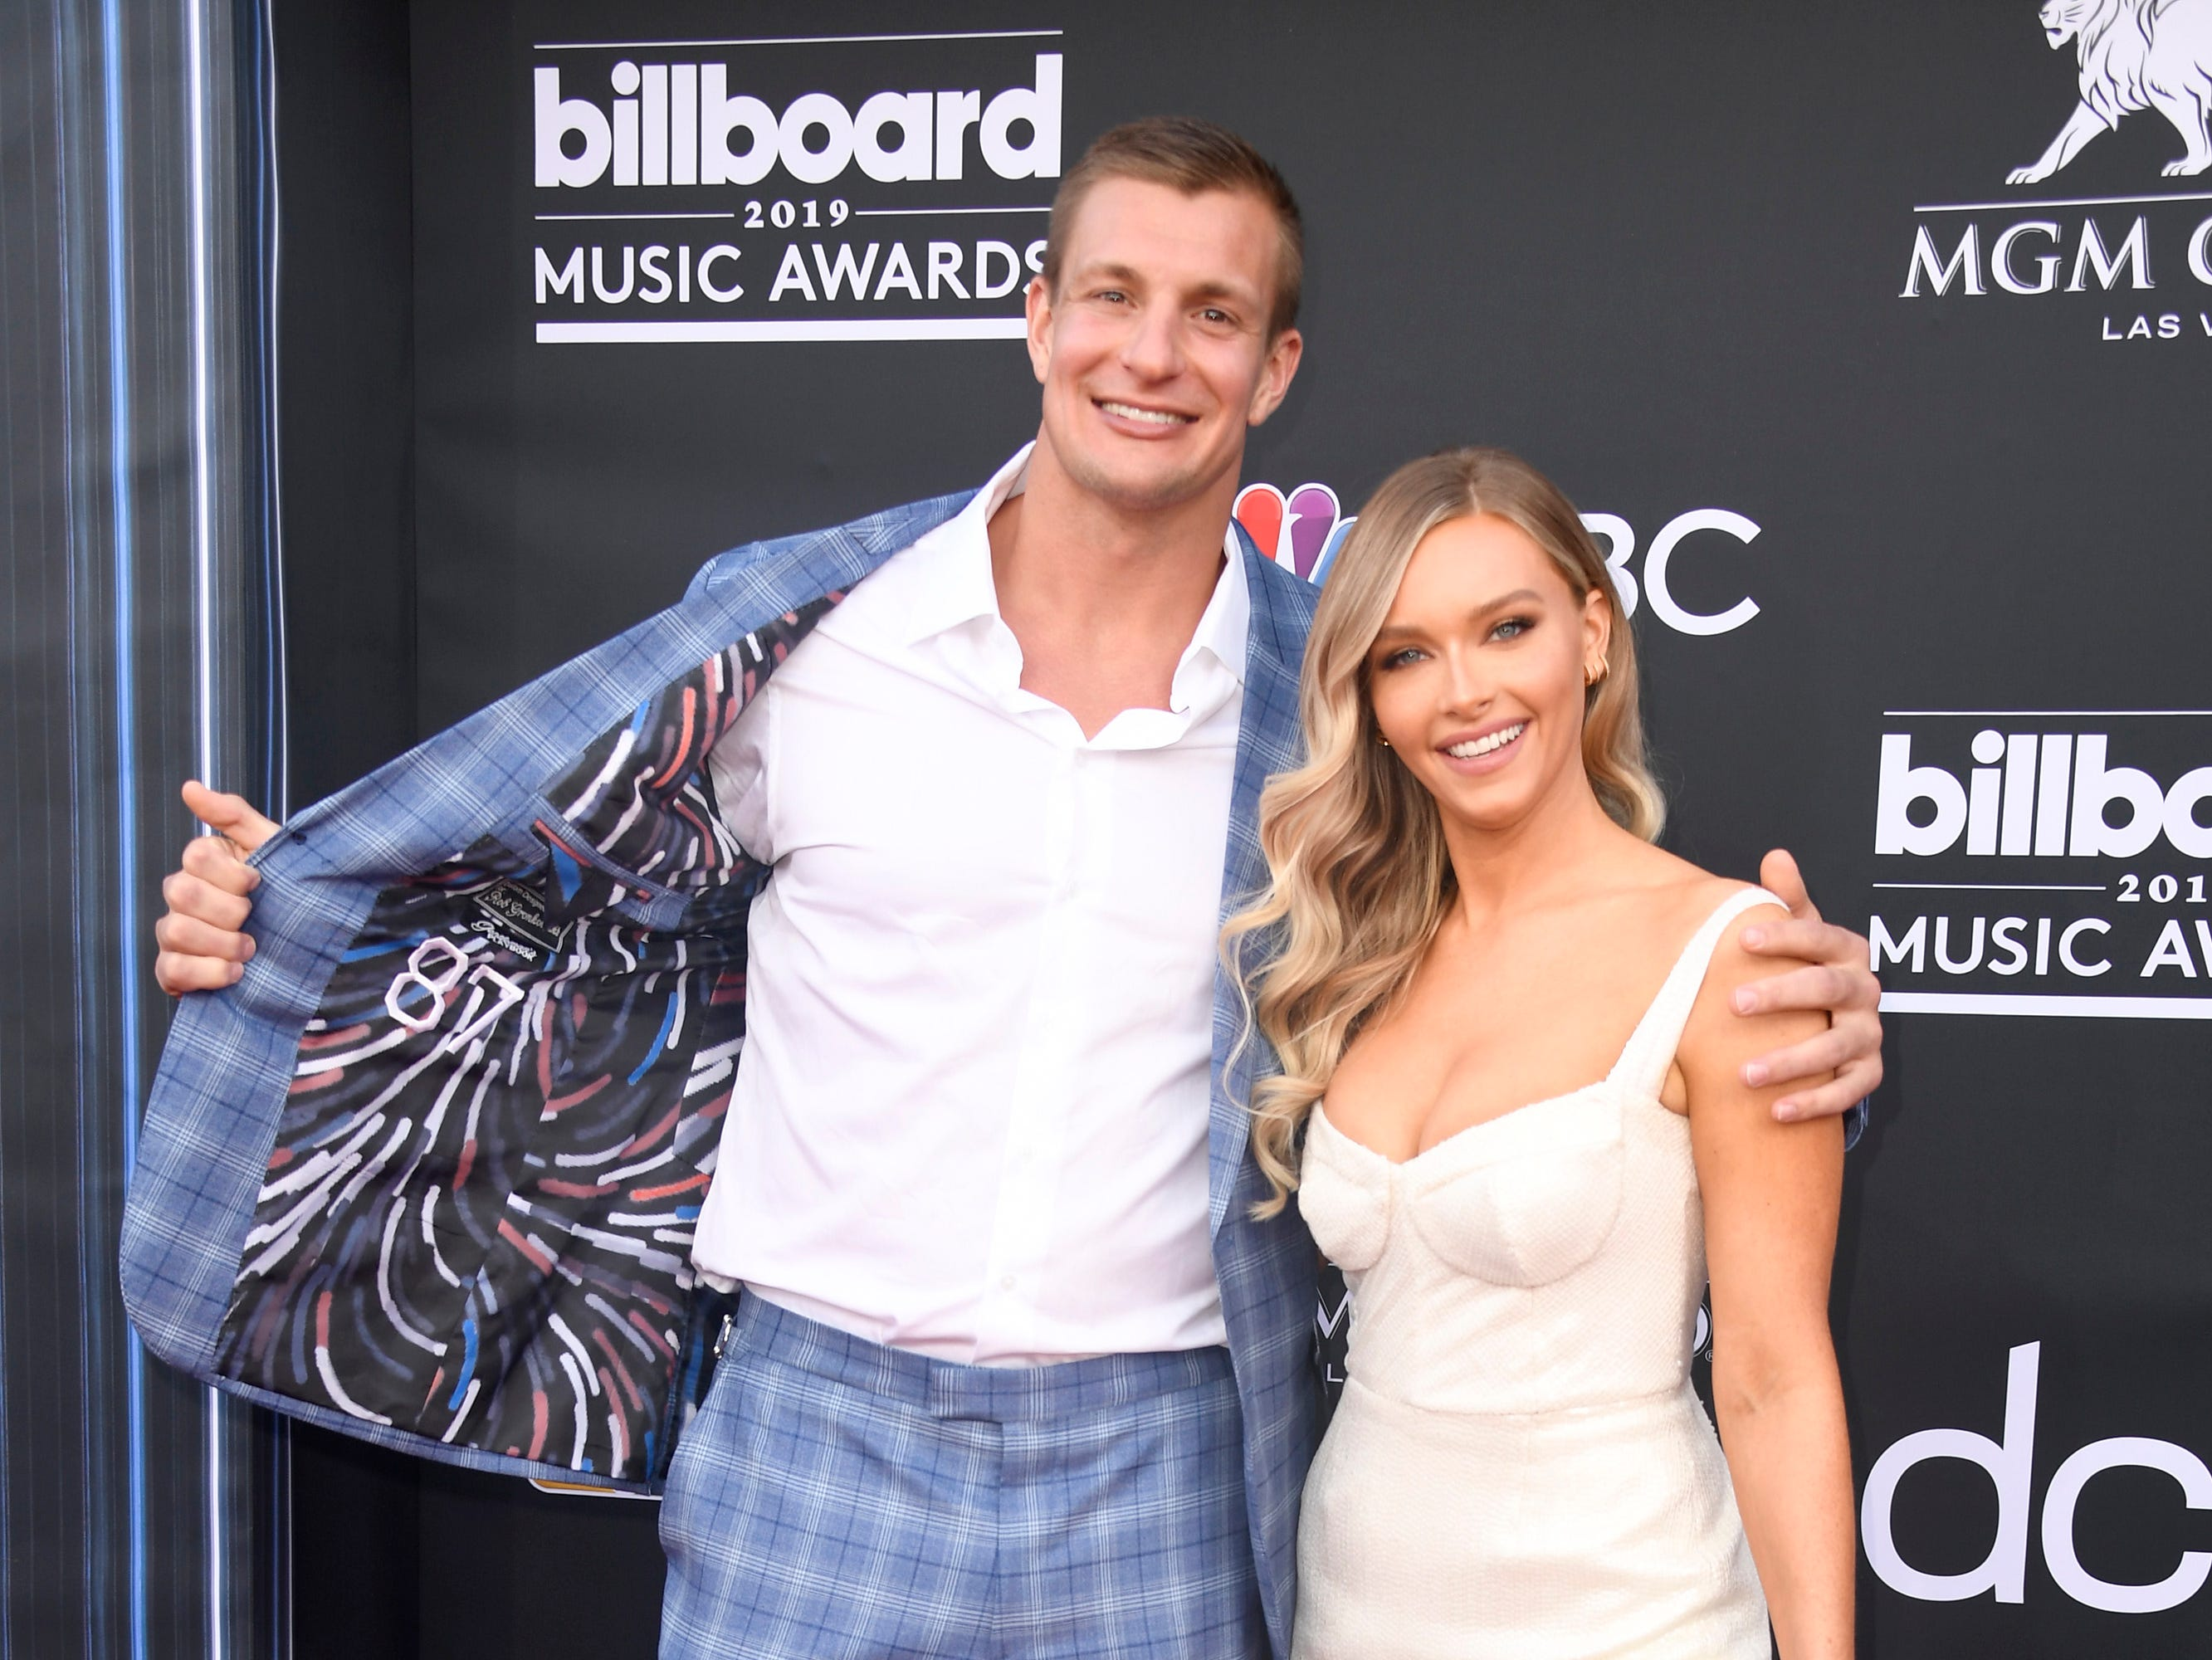 (L-R) Rob Gronkowski and Camille Kostek attend the 2019 Billboard Music Awards at MGM Grand Garden Arena on May 01, 2019 in Las Vegas, Nevada.